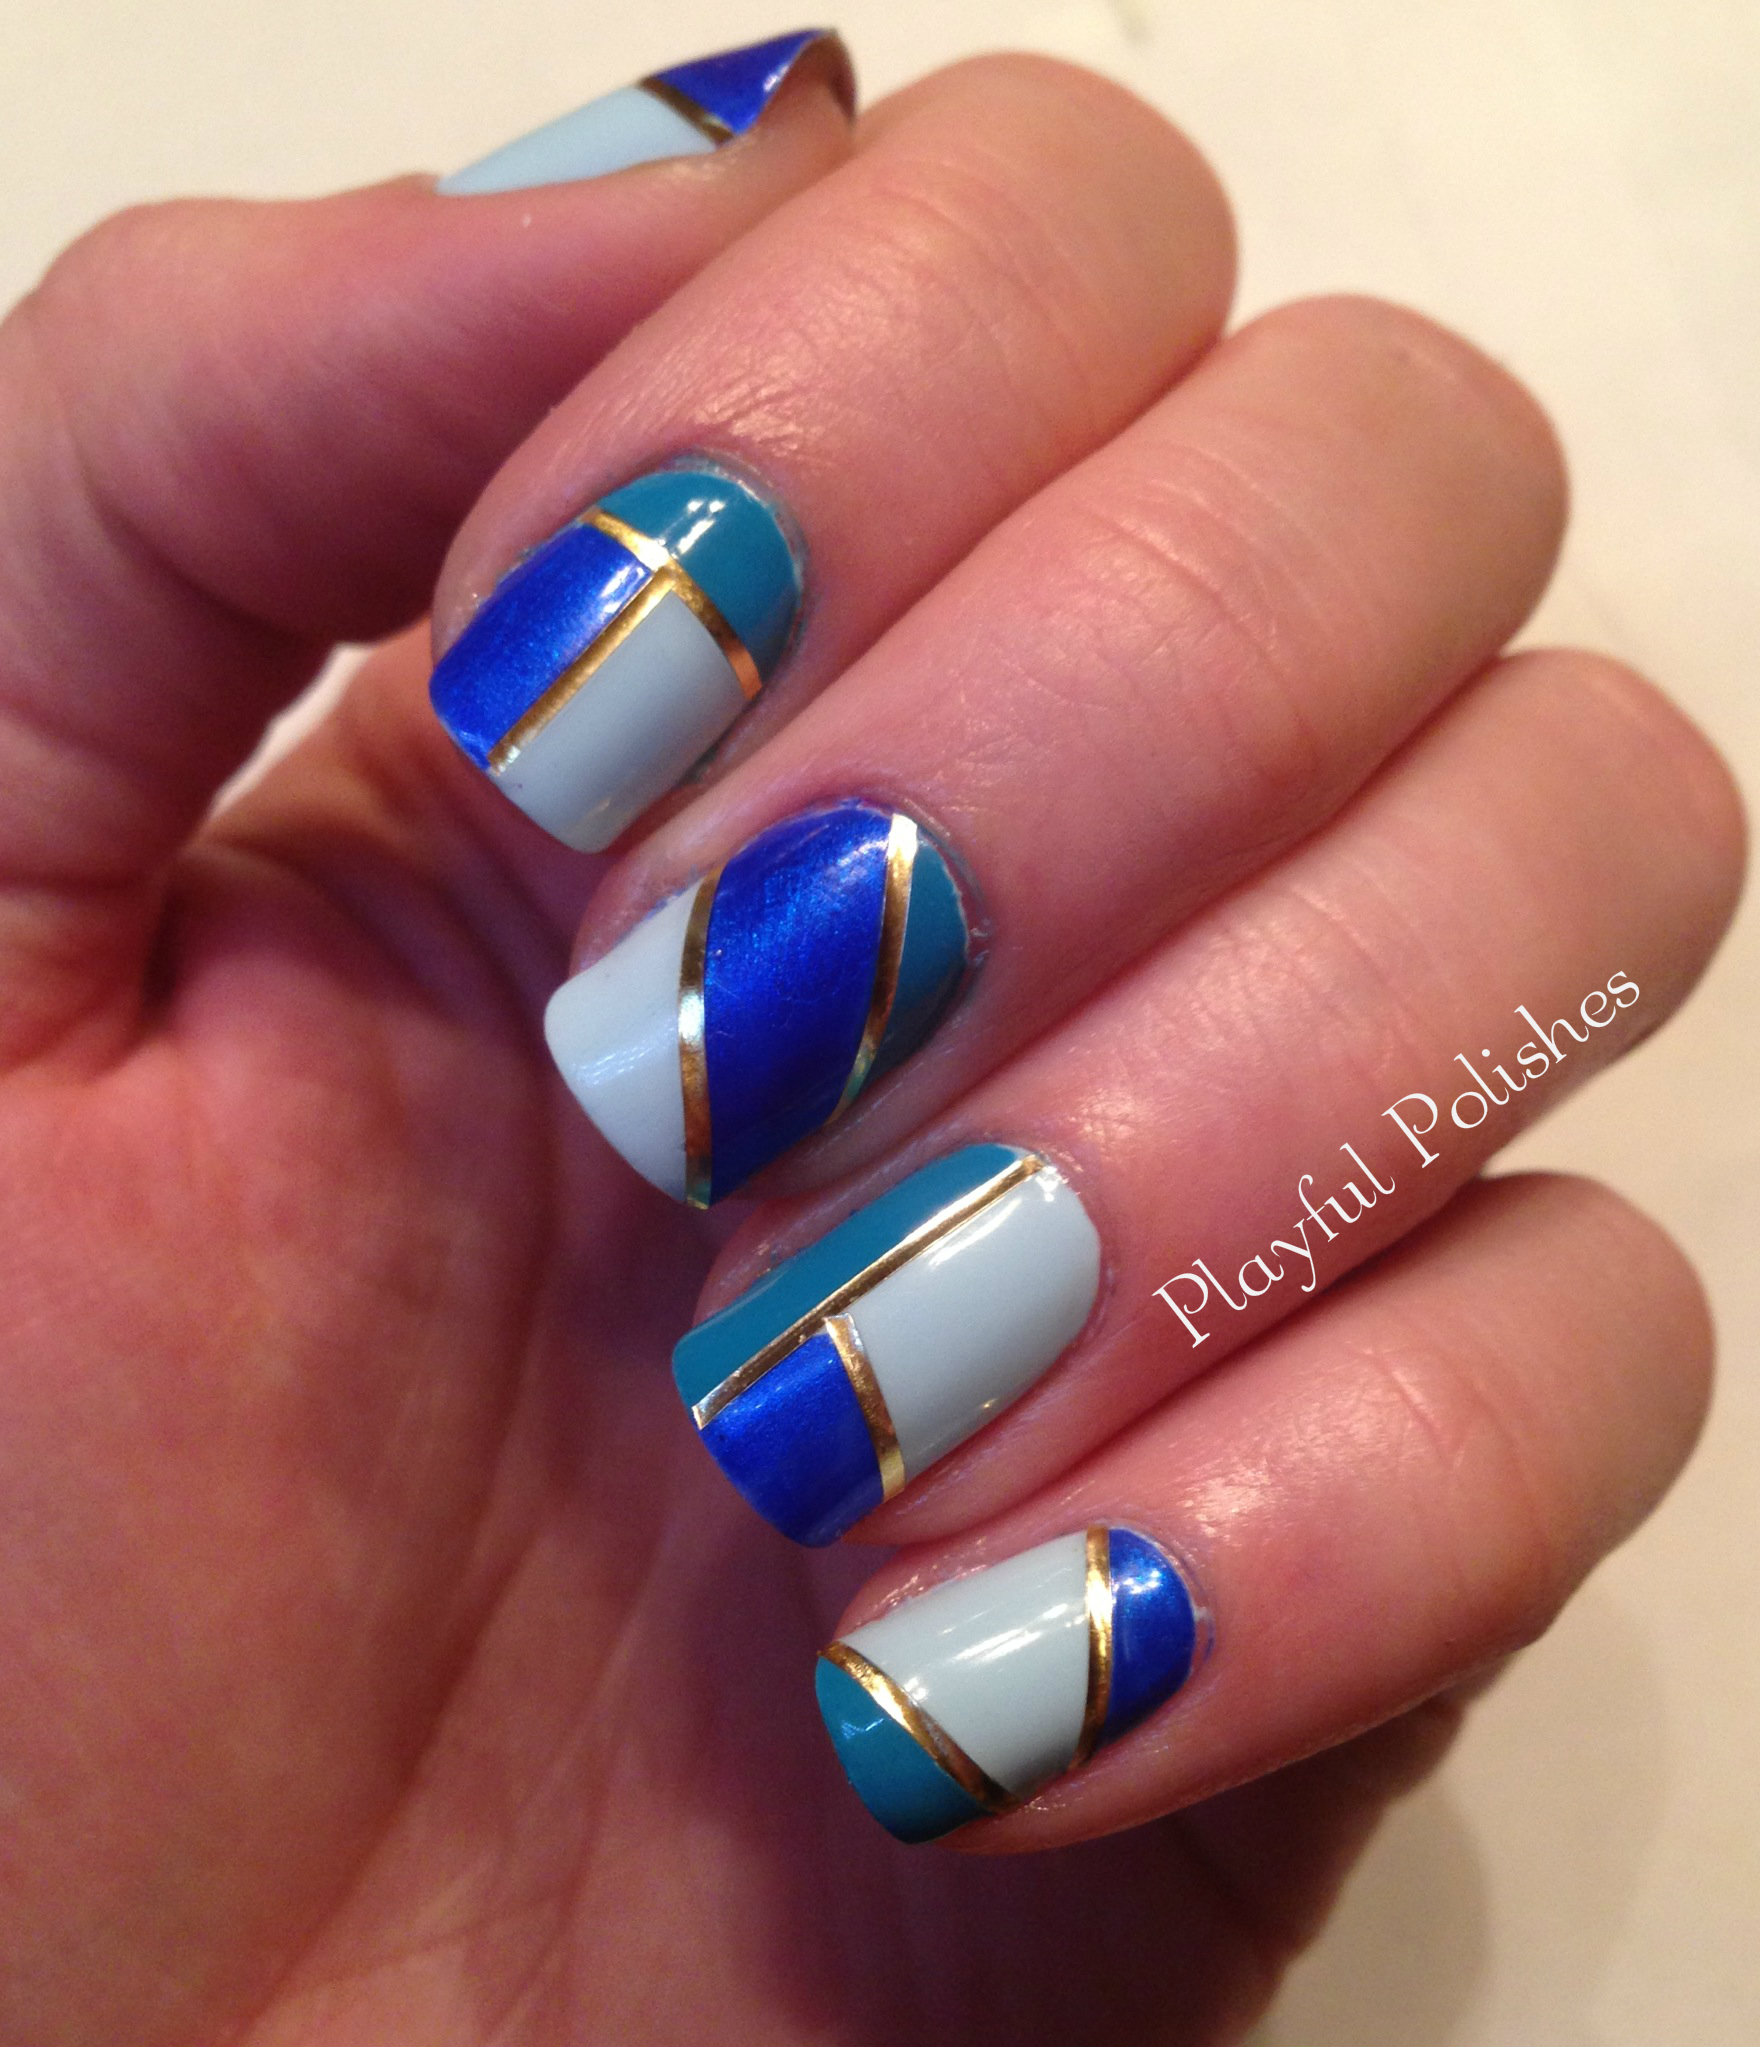 Nail Designs: 30 + Striped Nail Designs And Ideas